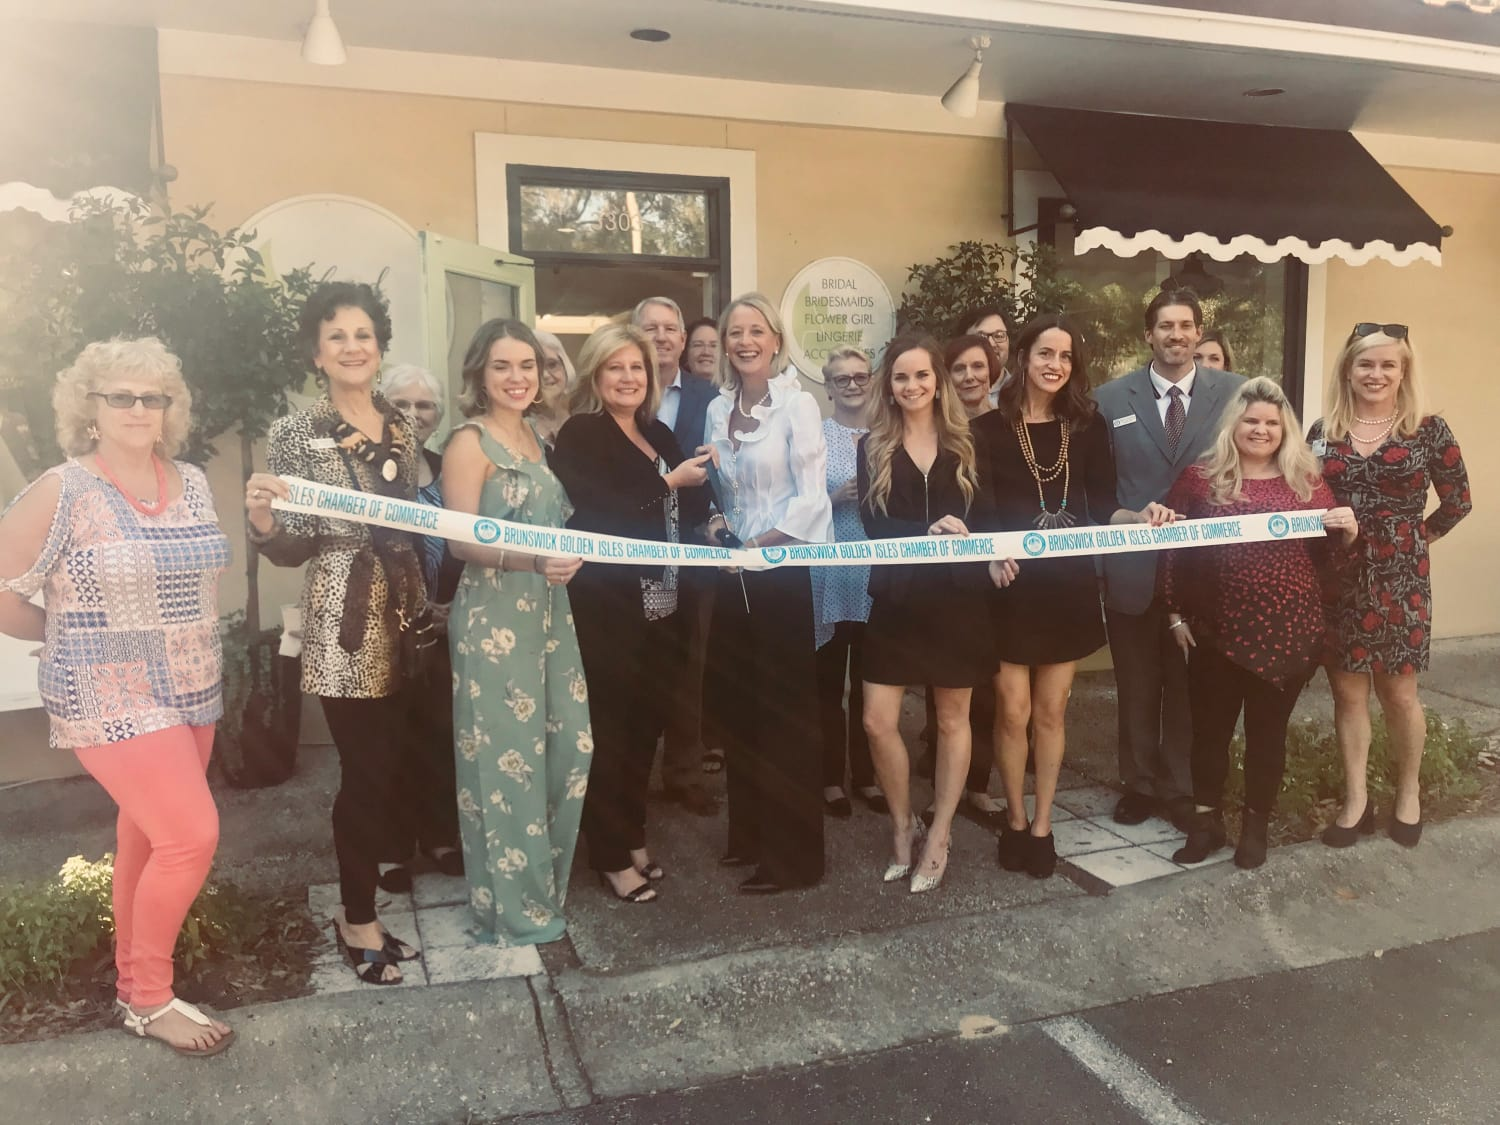 island-bridal-ribbon-cutting-11-2-17-w1500.jpg